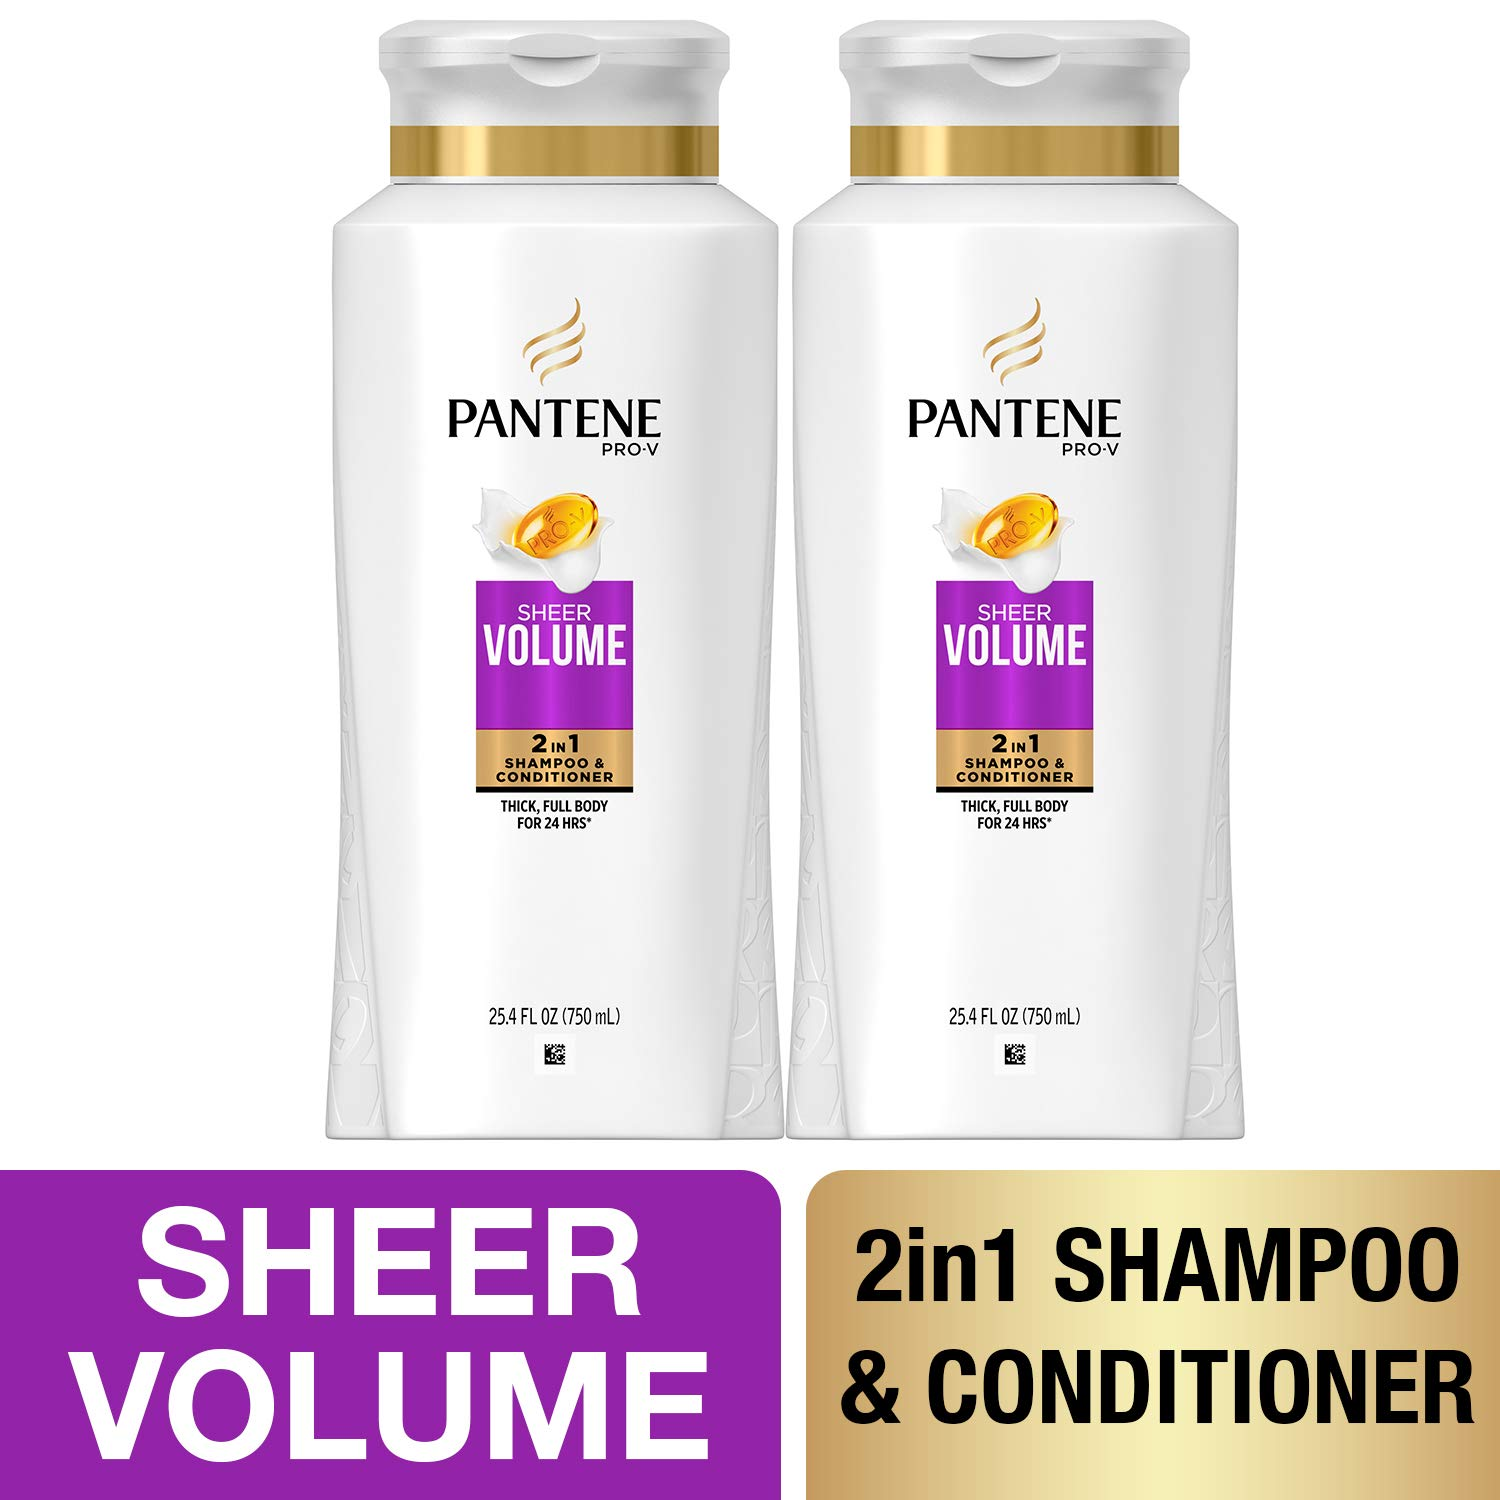 Pantene, Shampoo and Conditioner 2 in 1, Pro-V Sheer Volume for Fine Hair, 25.4 fl oz, Twin Pack